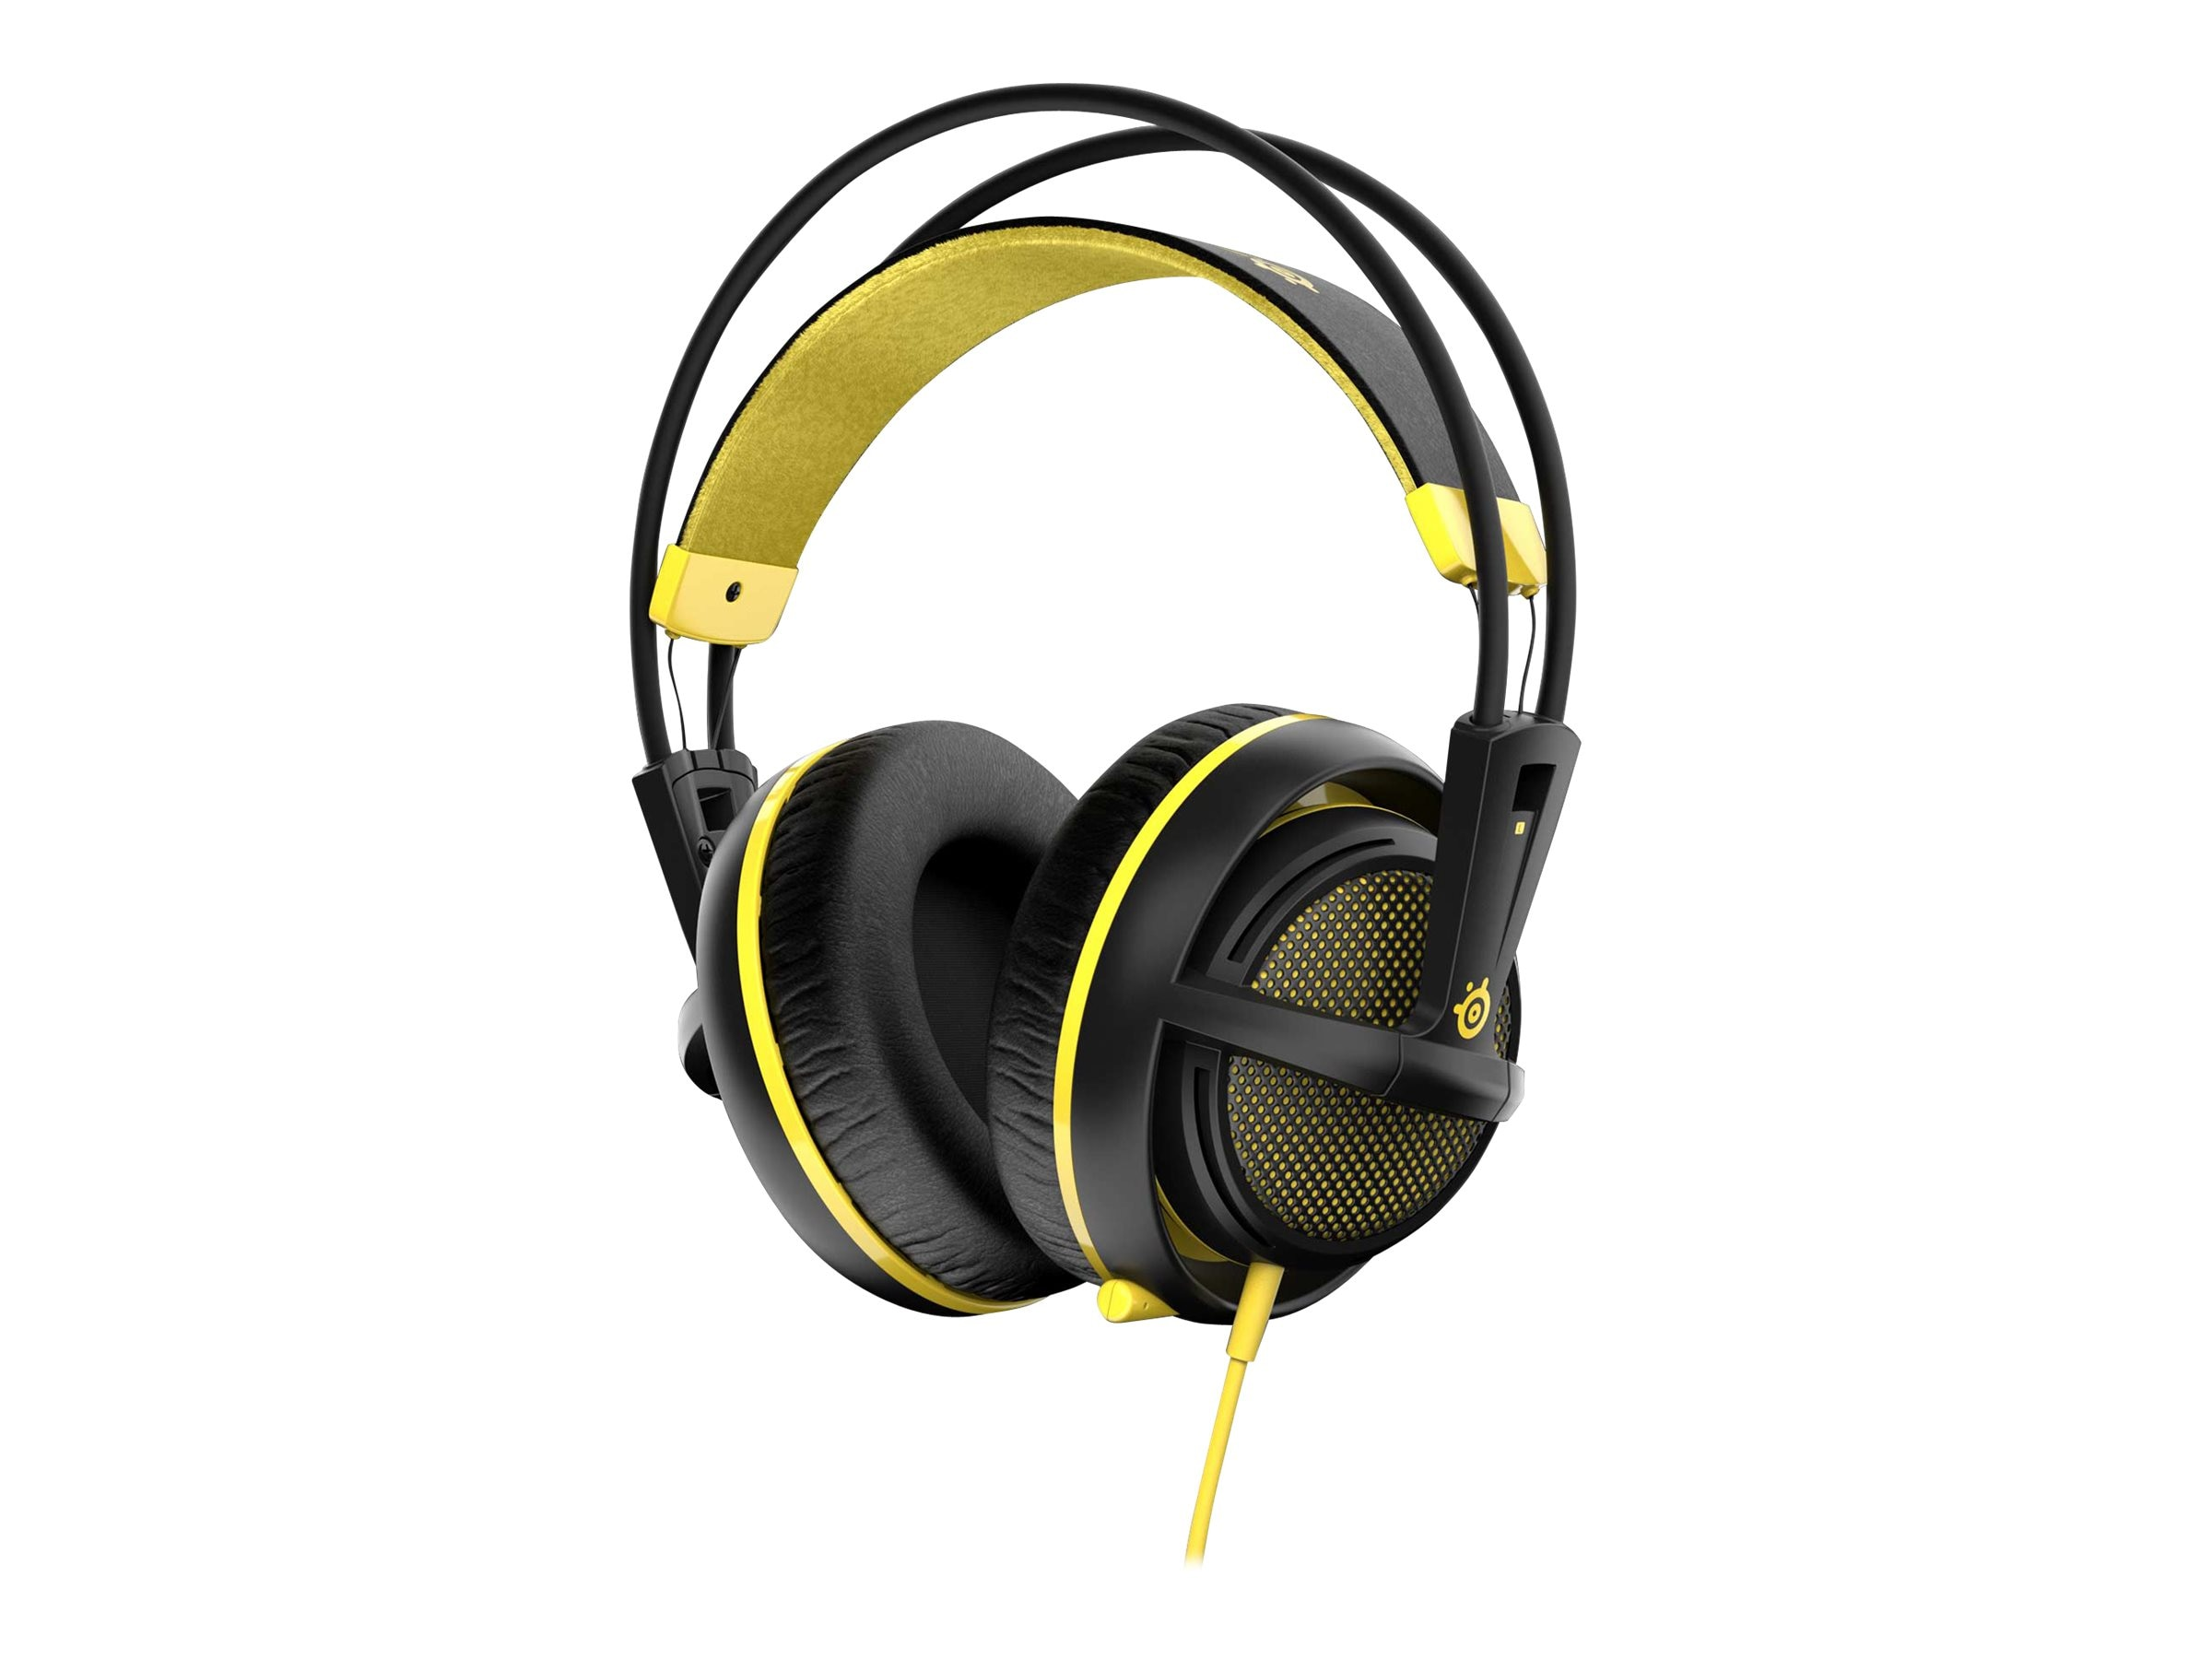 Steelseries Siberia 200 Headset - Yellow